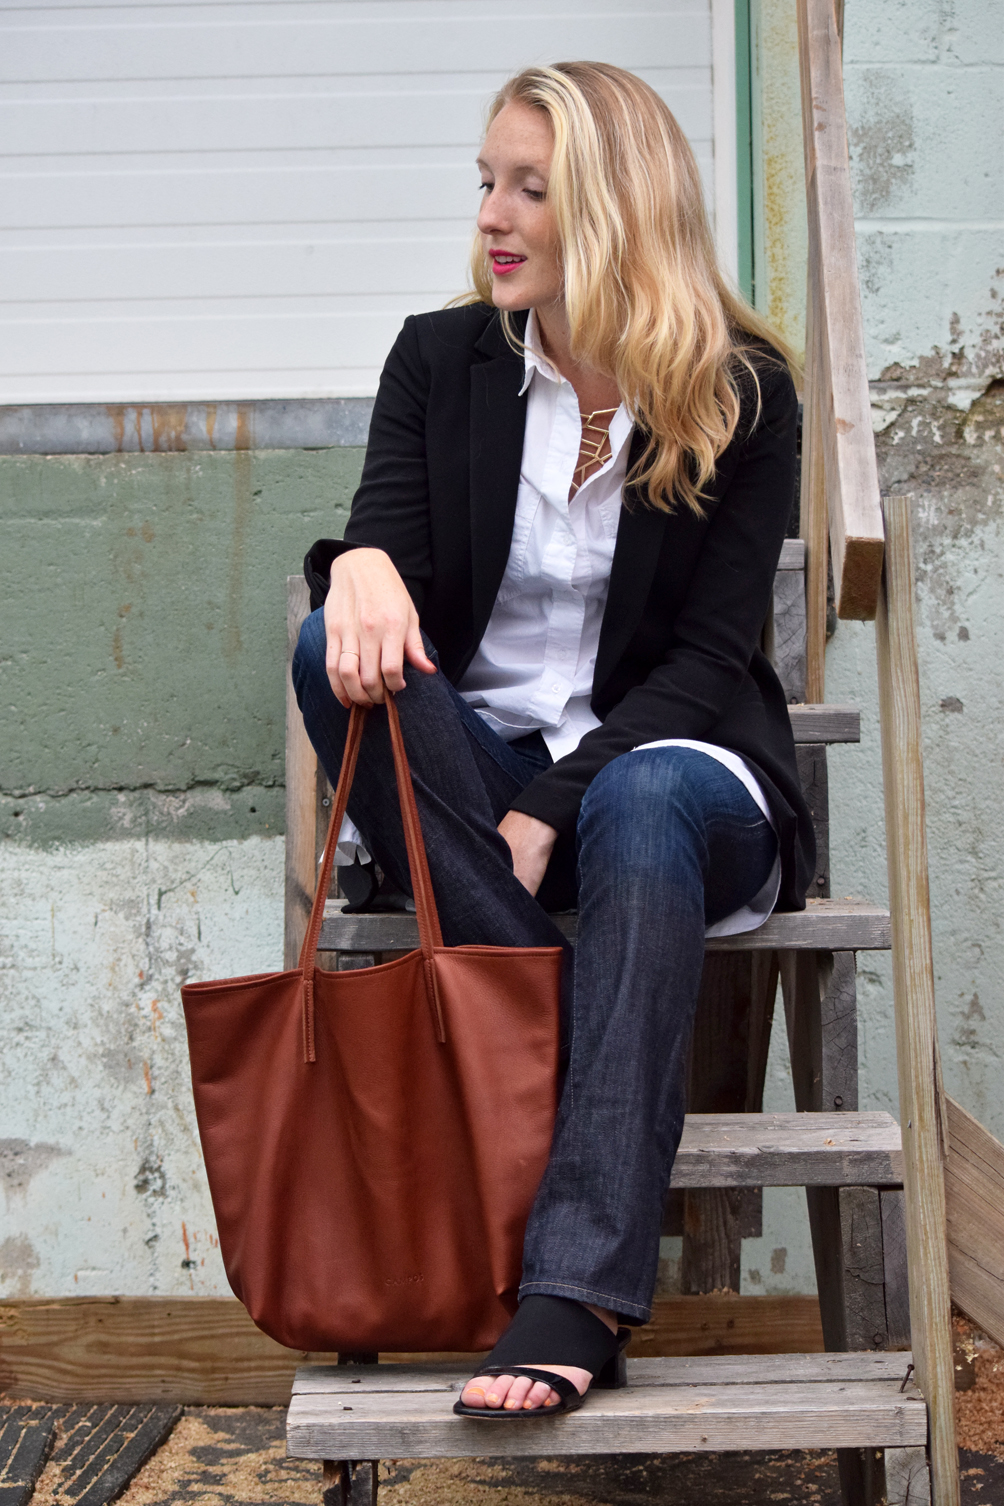 fall outfit ideas with a blazer and flare jeans